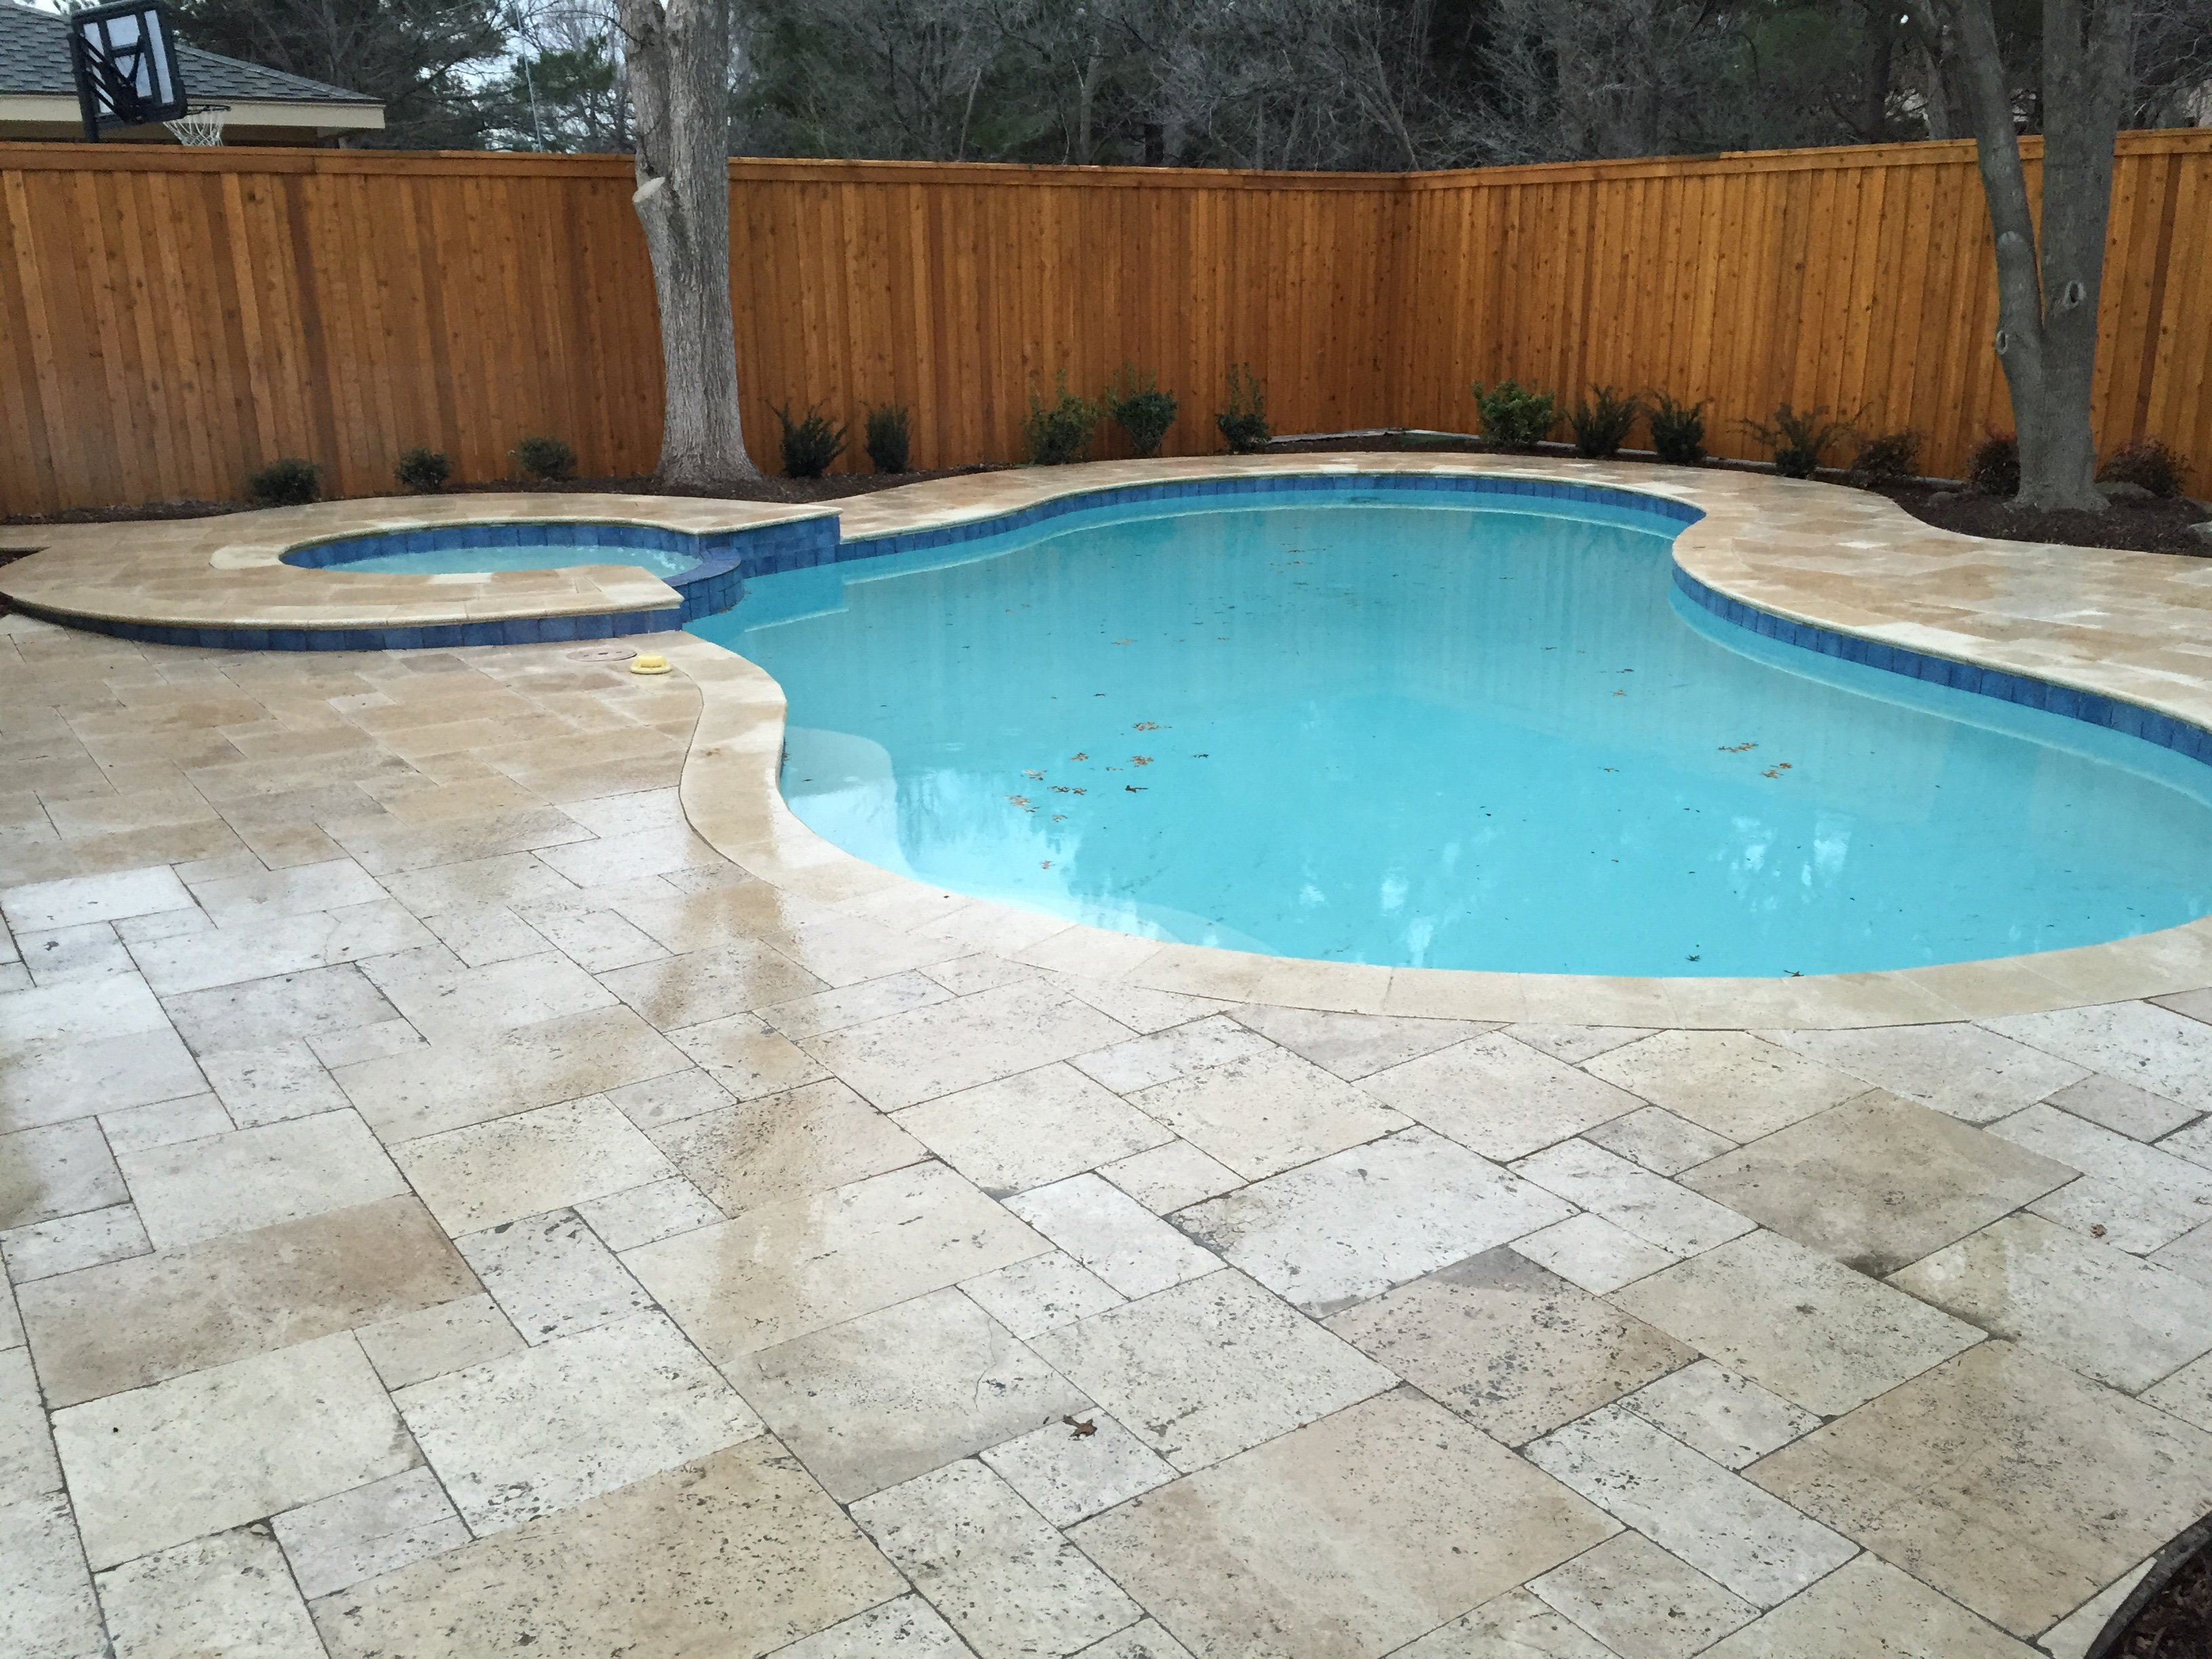 Out-Back Pool & Spa | Residential Pool Contractor in Canyon, TX - Out-Back Pool & Spa